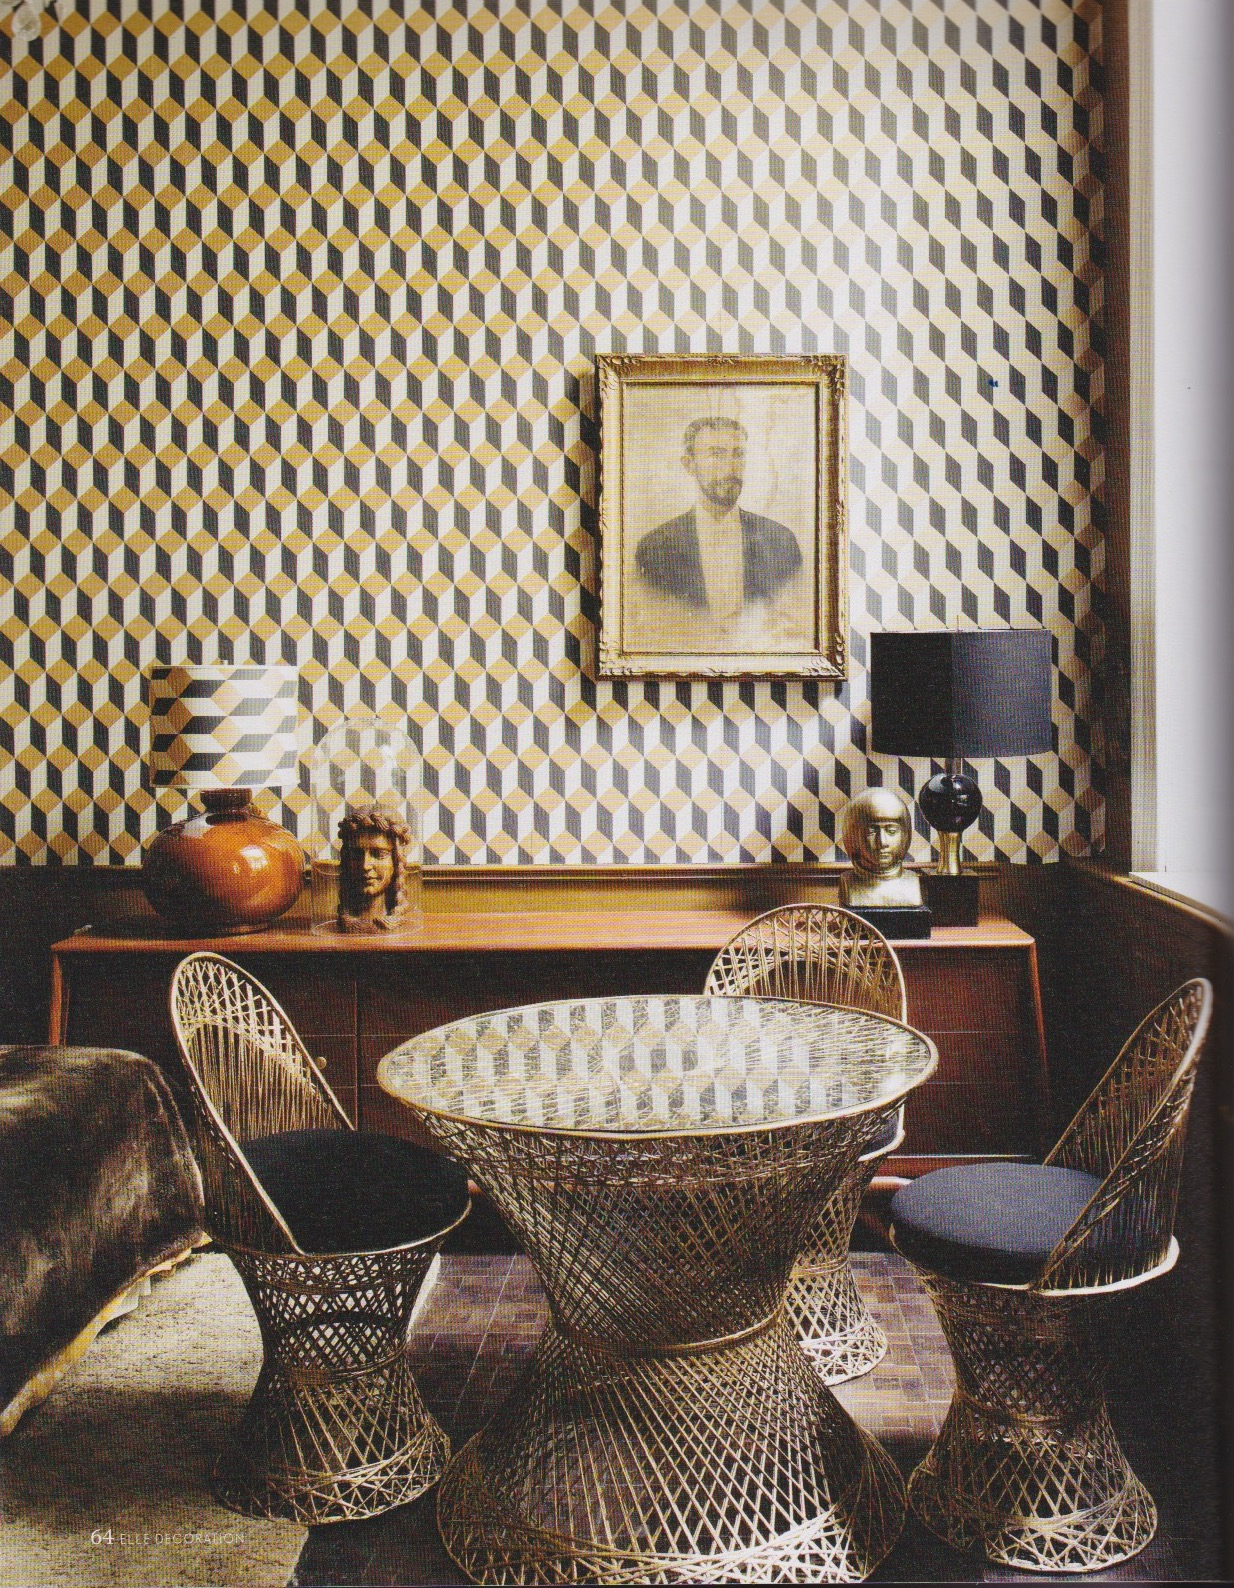 Dinning set (popular in Acapulco in the 50s-60s) by Woodard in ELLE Decoration issue February-March 2017/ Home & Interior Design by Dirk Jan-Kinet/ Mexico City